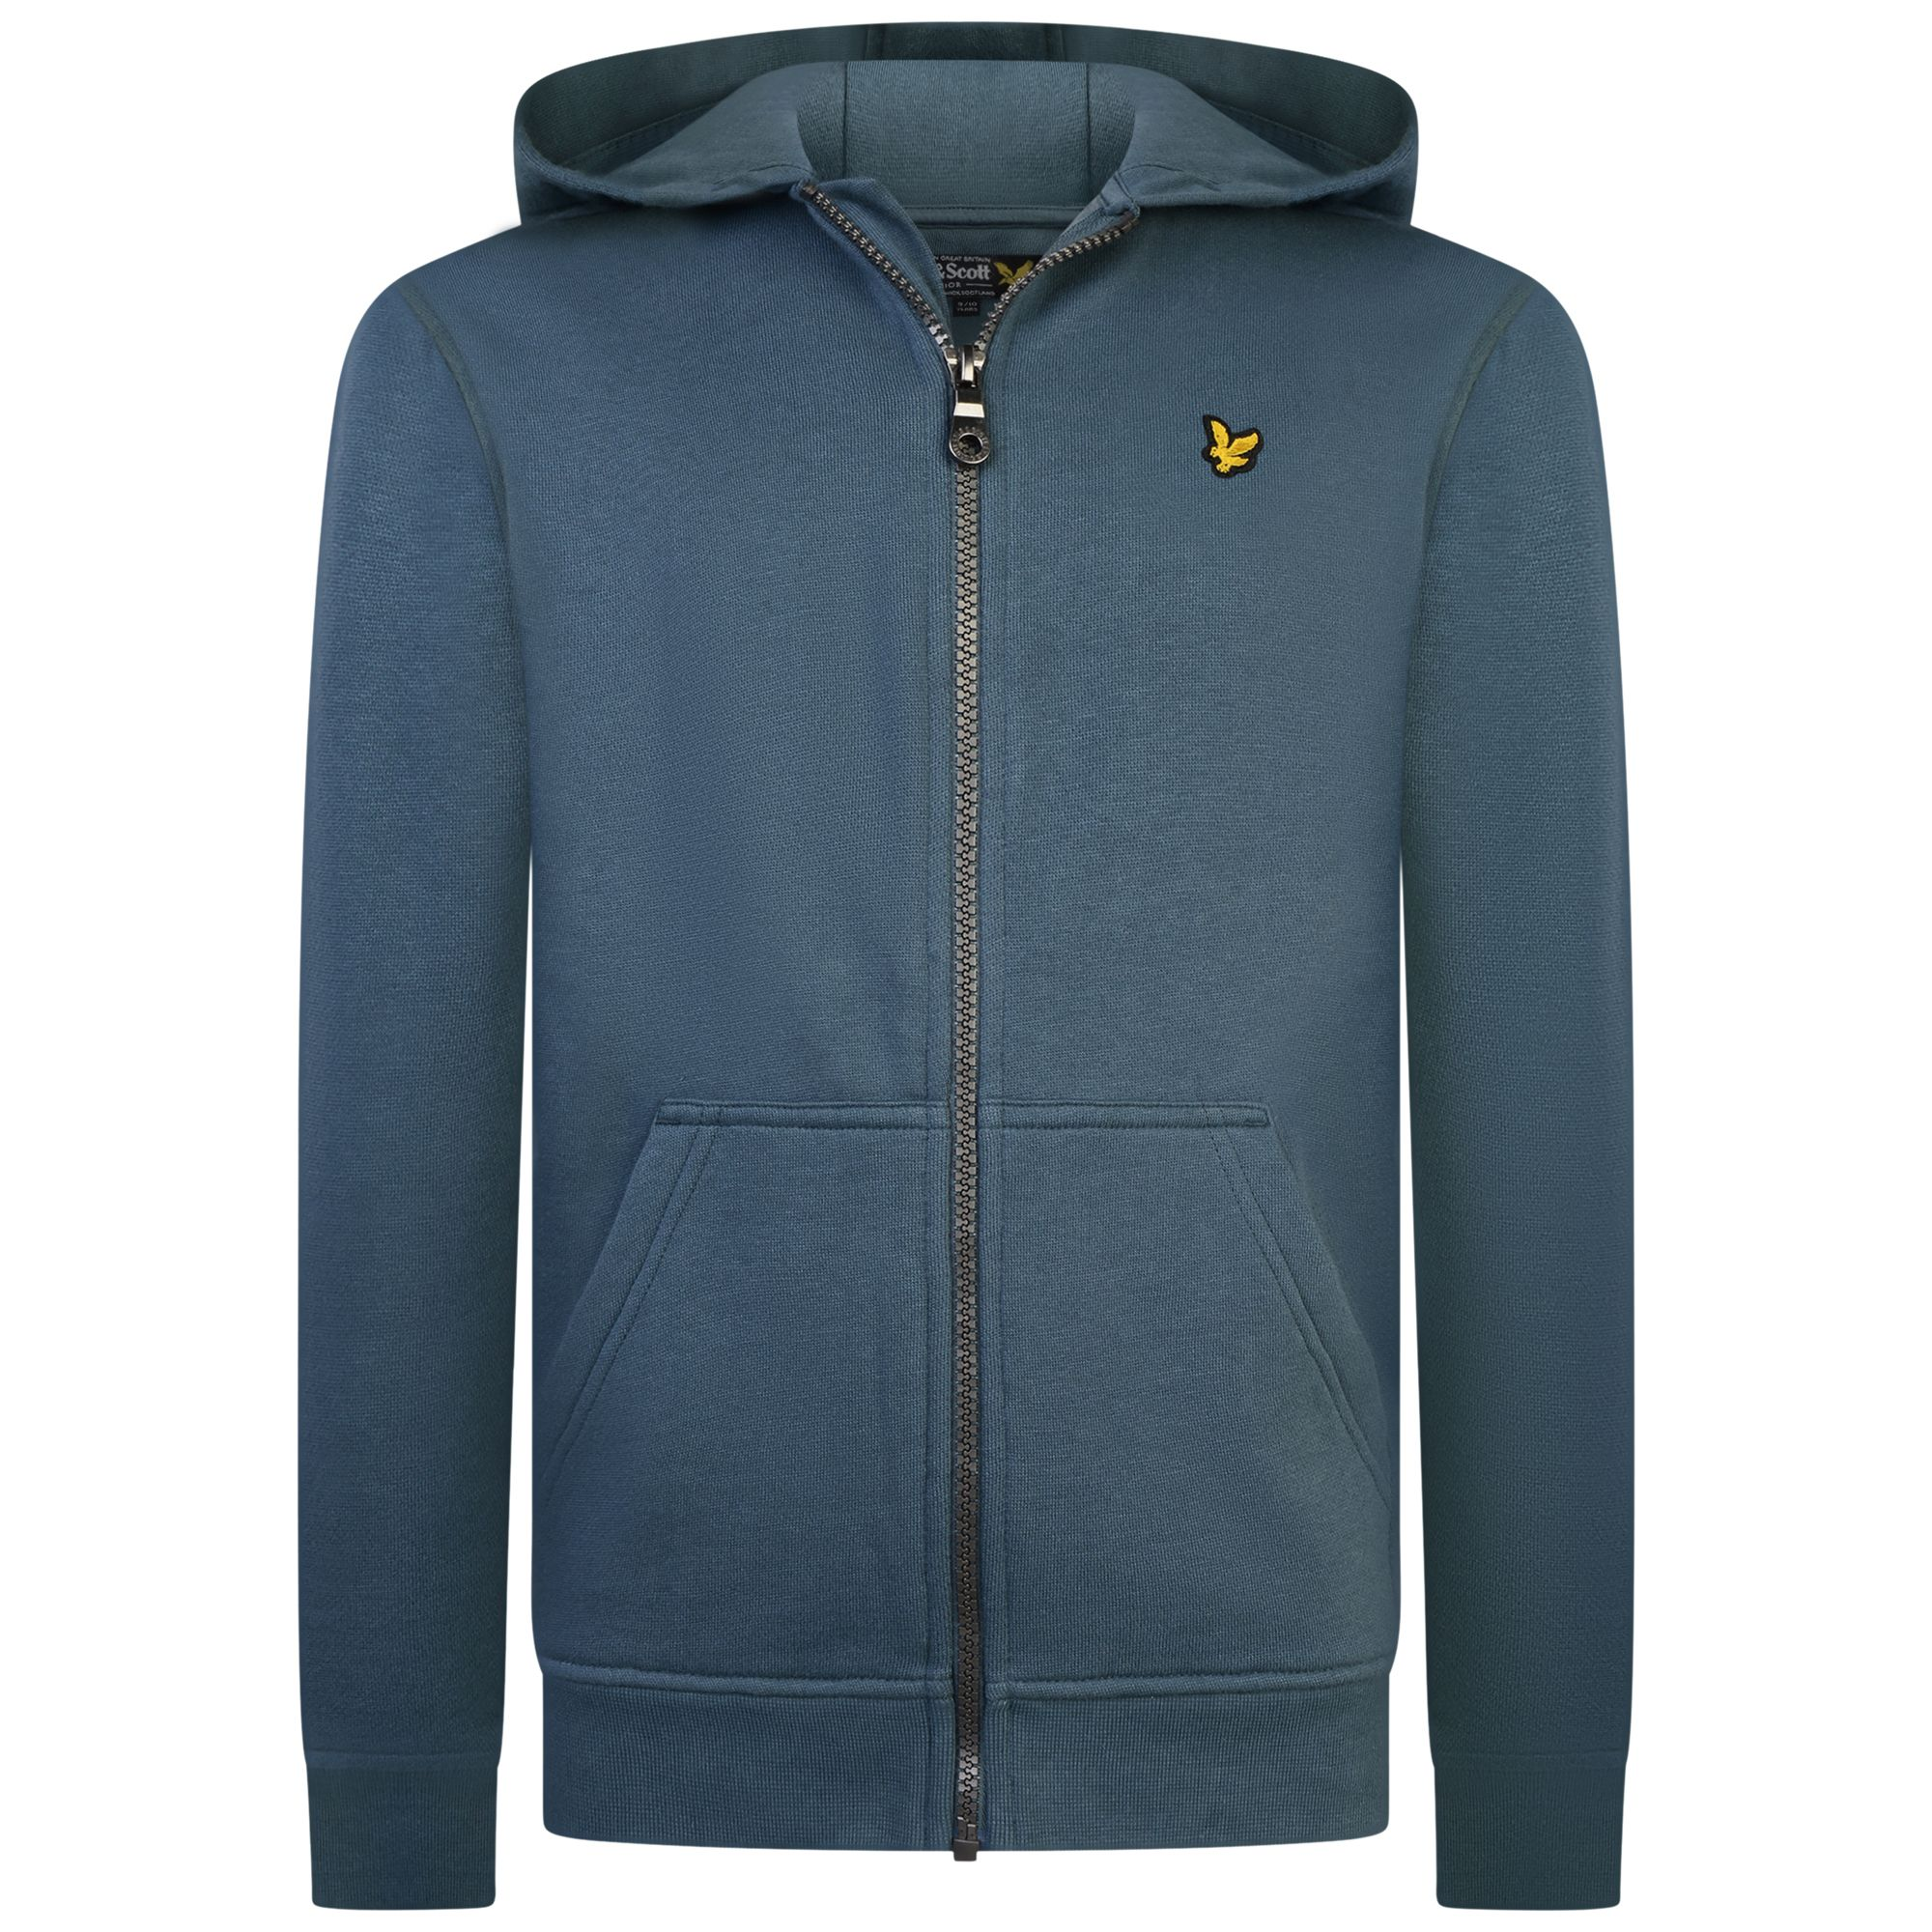 Lyle & Scott Classic Zip Hoodie - Orion Blue